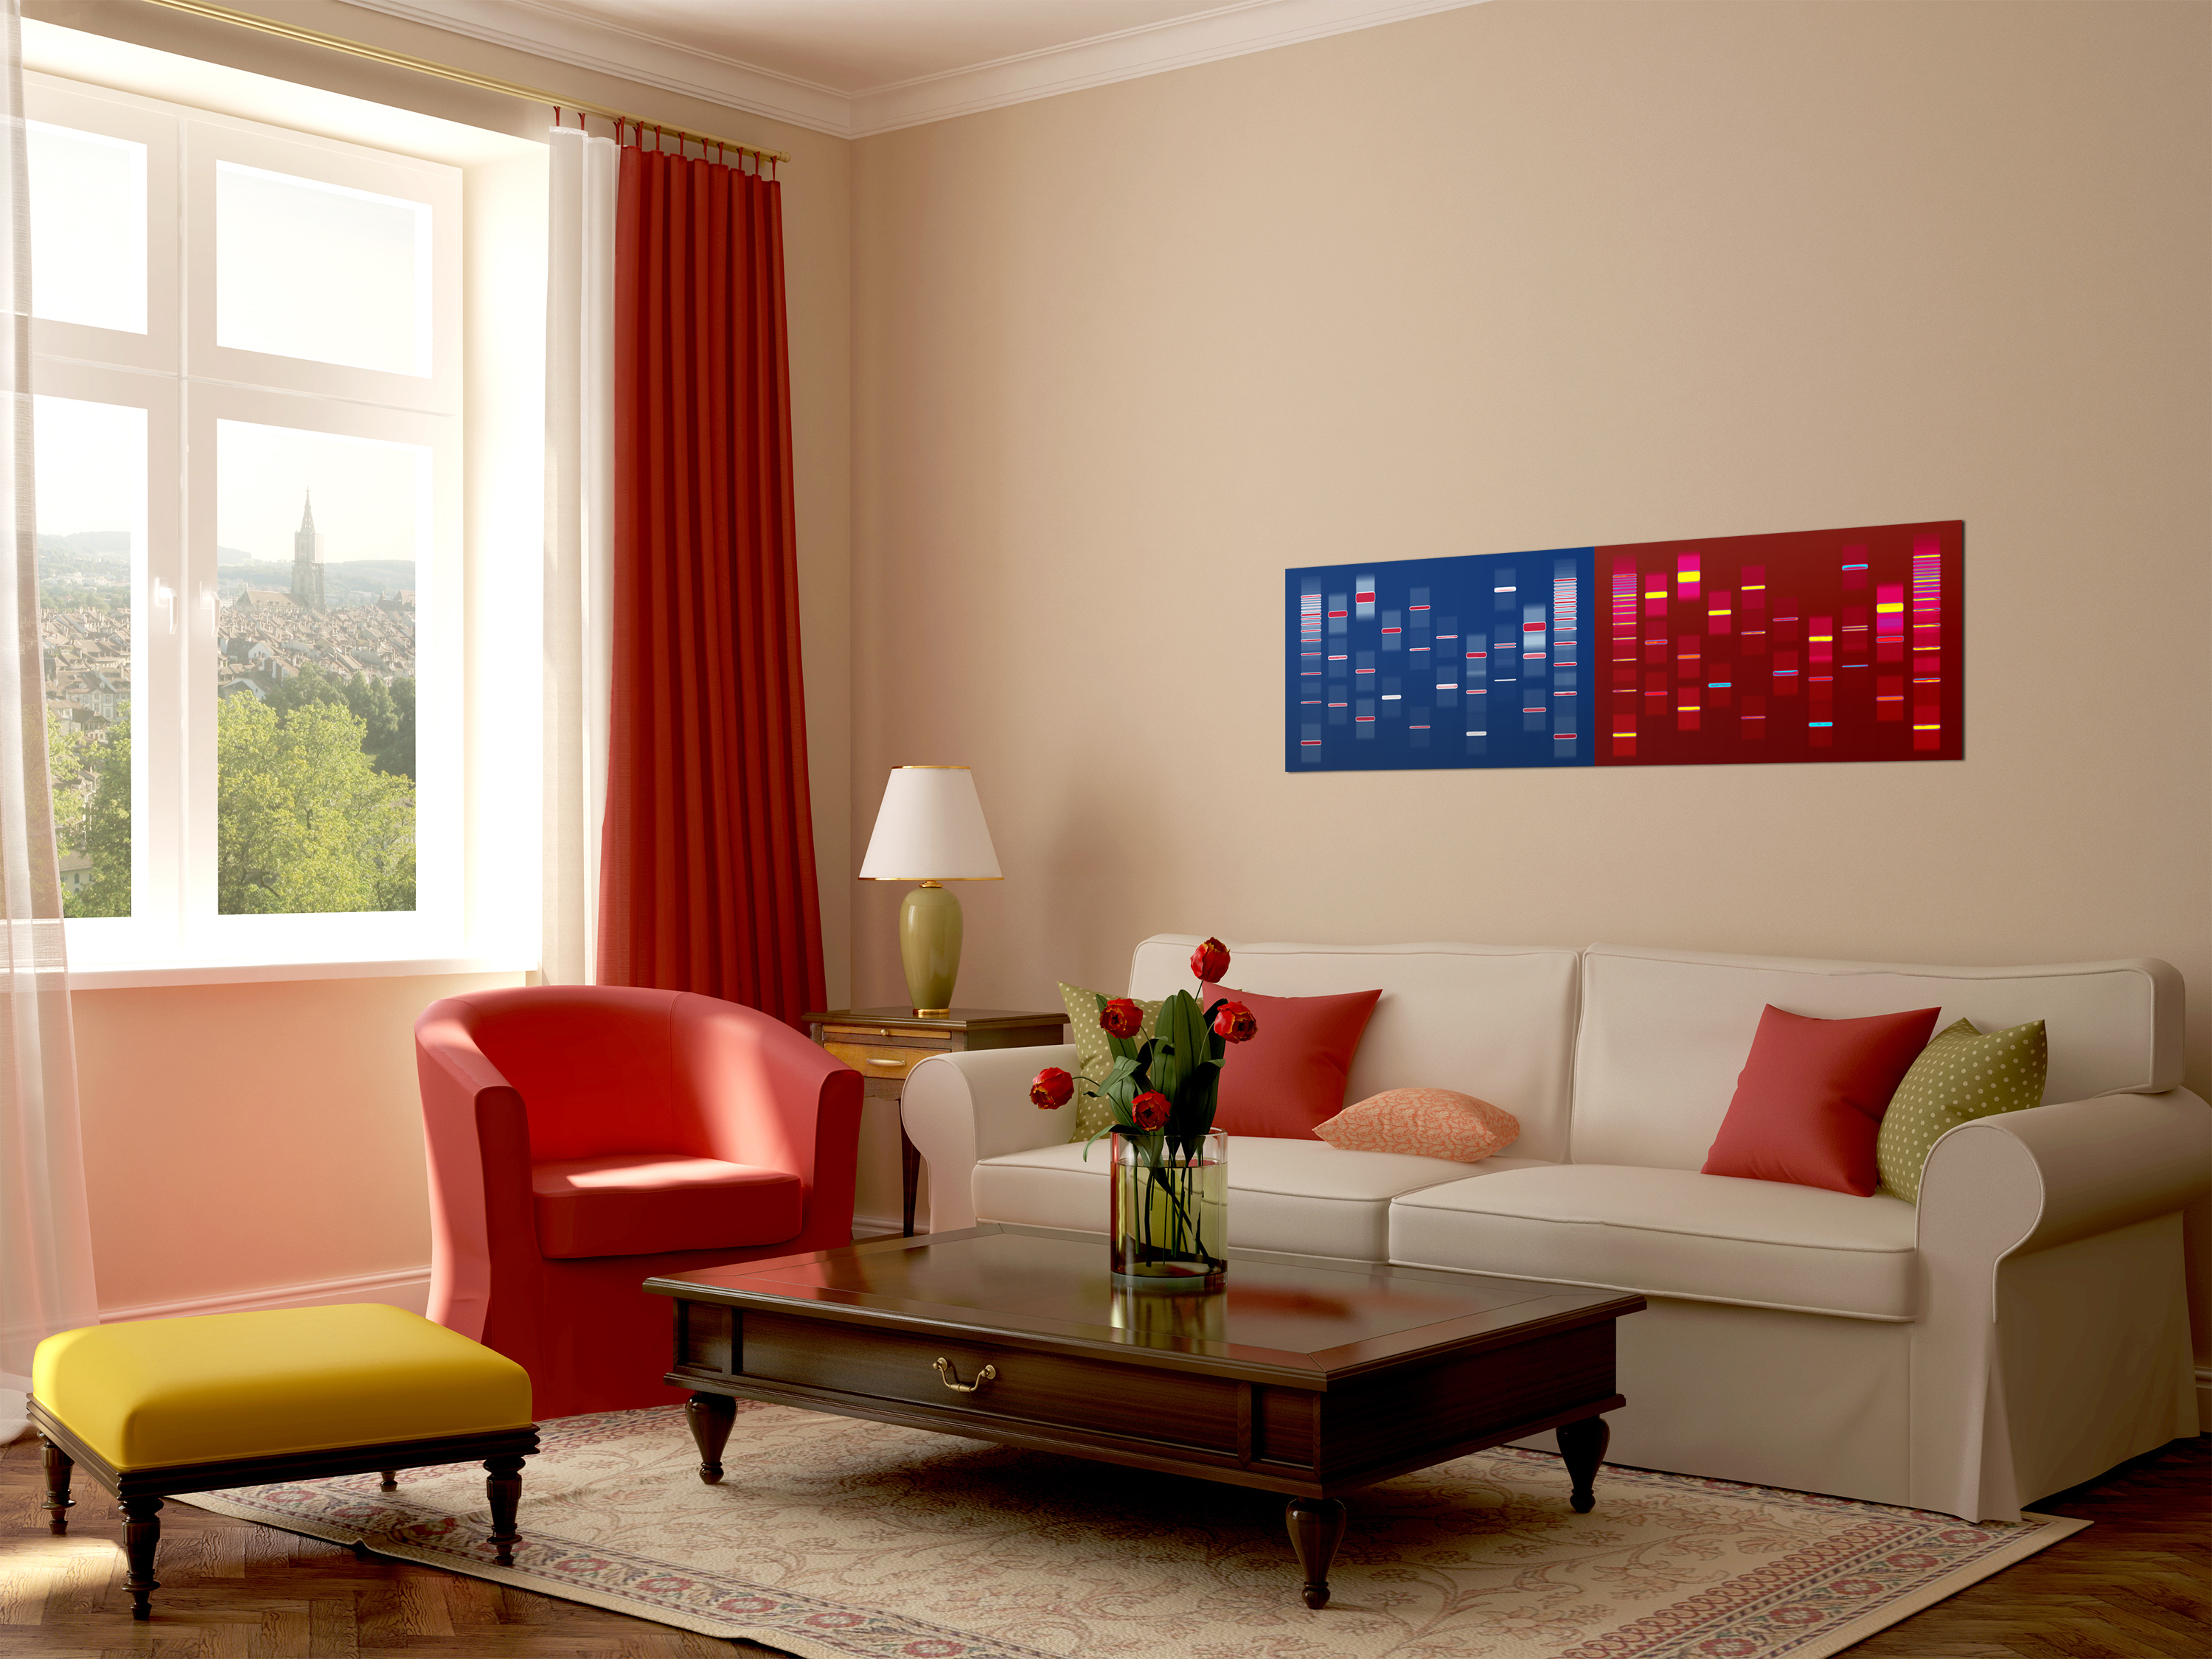 interior-in-eclectic-style